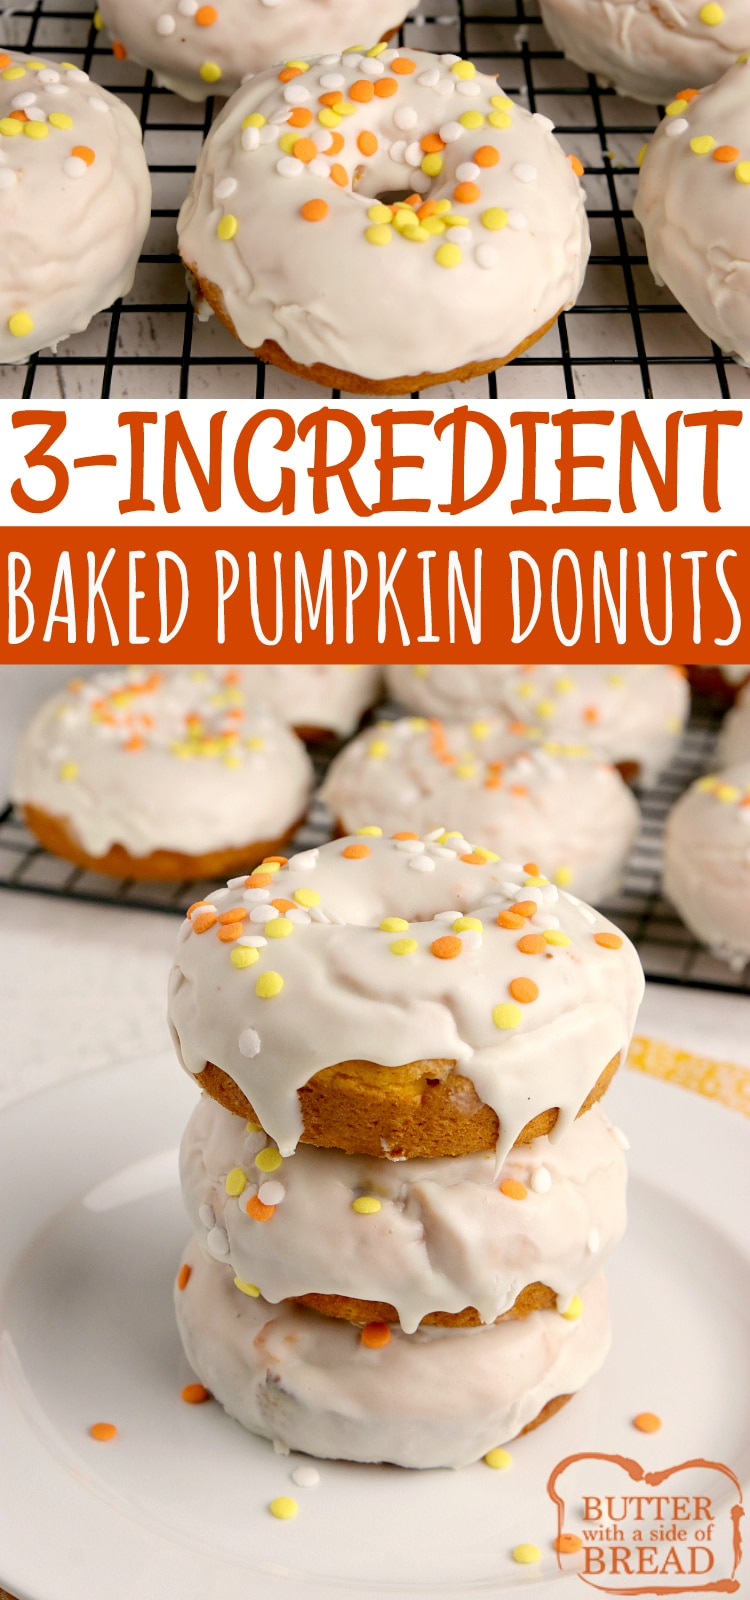 3-Ingredient Baked Pumpkin Donuts made with pumpkin, cake mix and frosting and completely baked in under 15 minutes! Easy cake mix donut recipe that yields soft, delicious doughnuts with tons of pumpkin flavor!